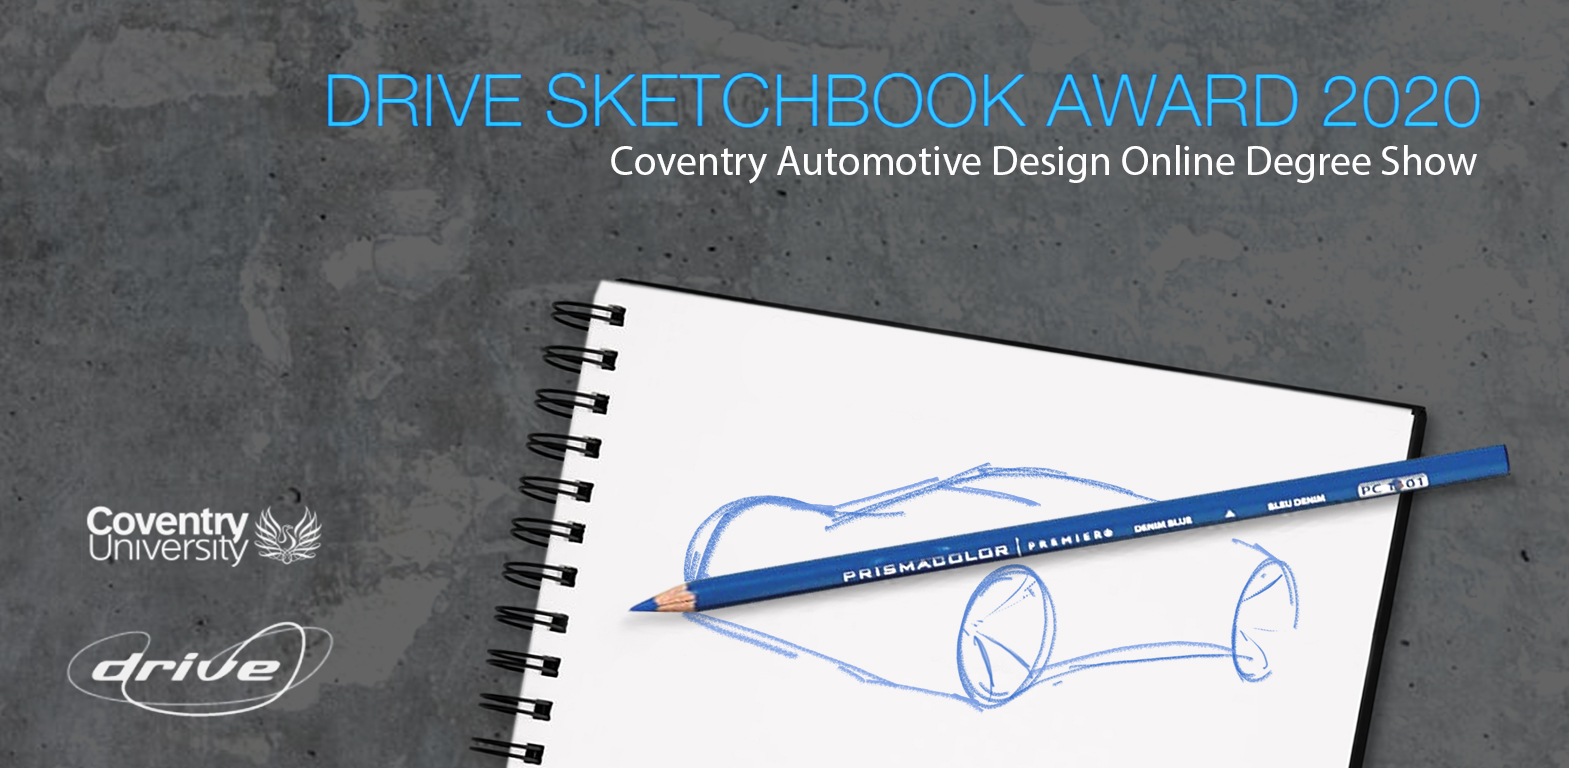 Coventry Automotive Degree Show 2020 Drive Sketchbook Award